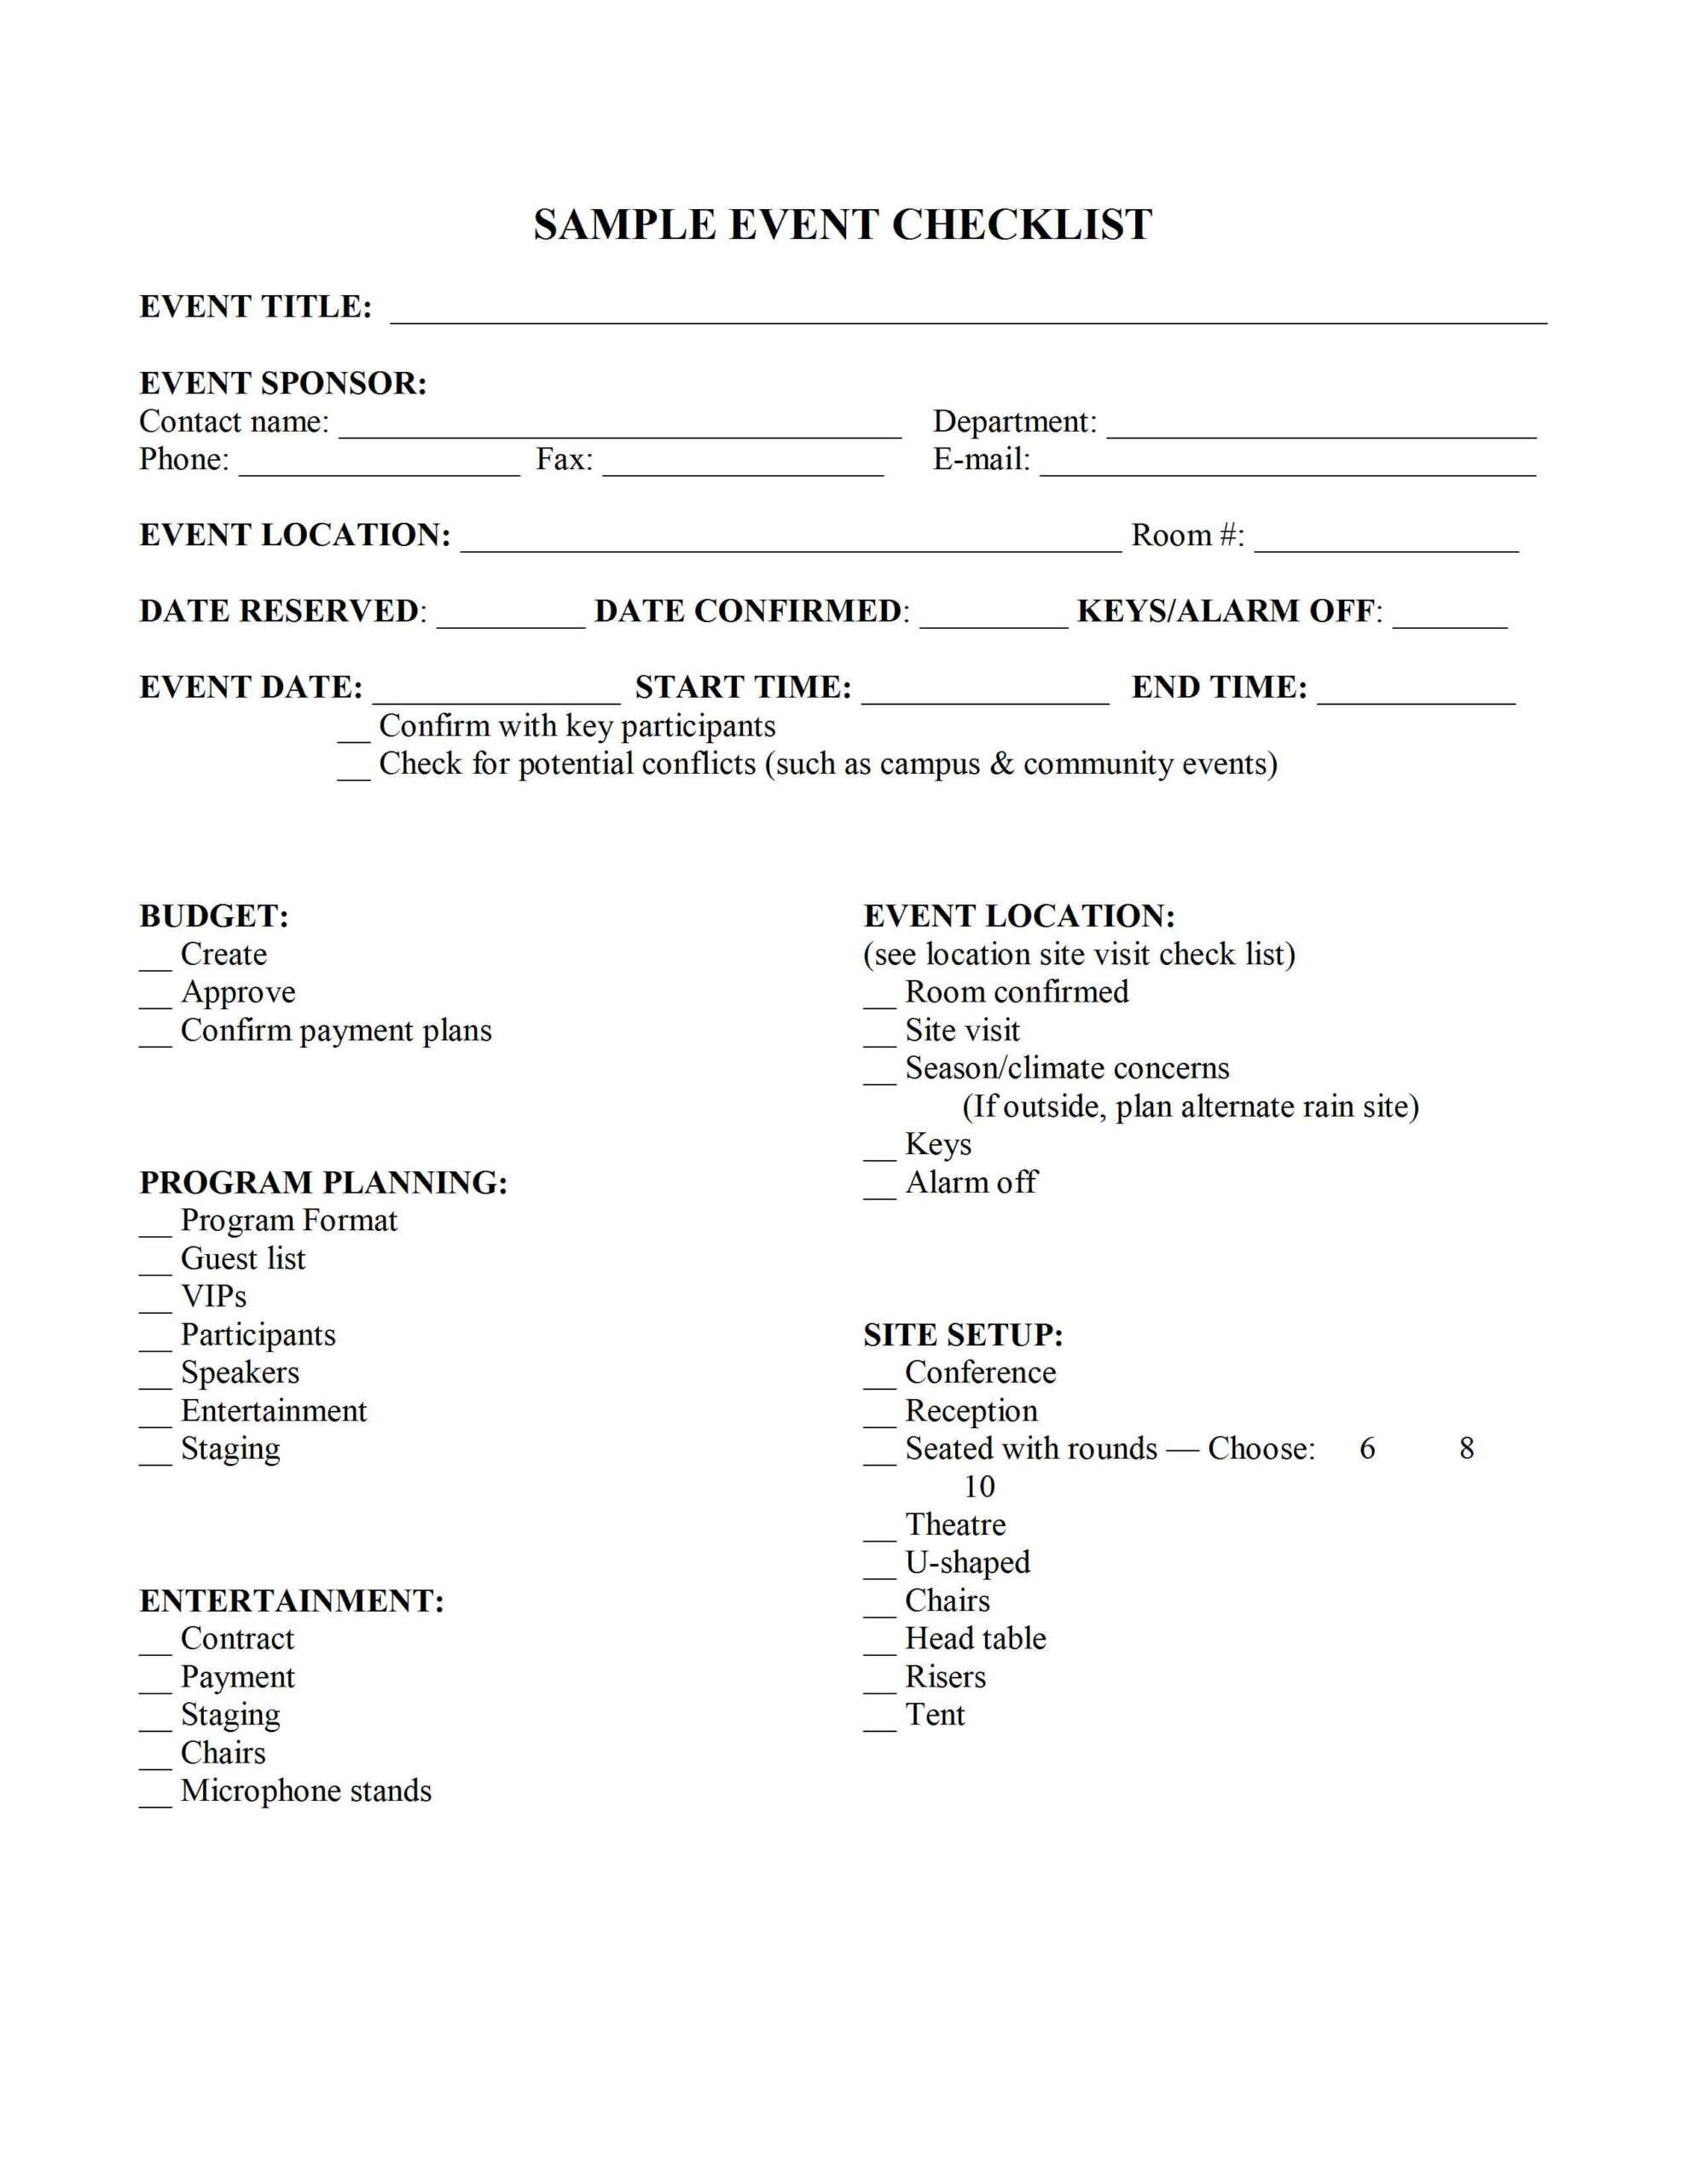 Event Planning Checklist Template in Corporate Event Planning Checklist Template